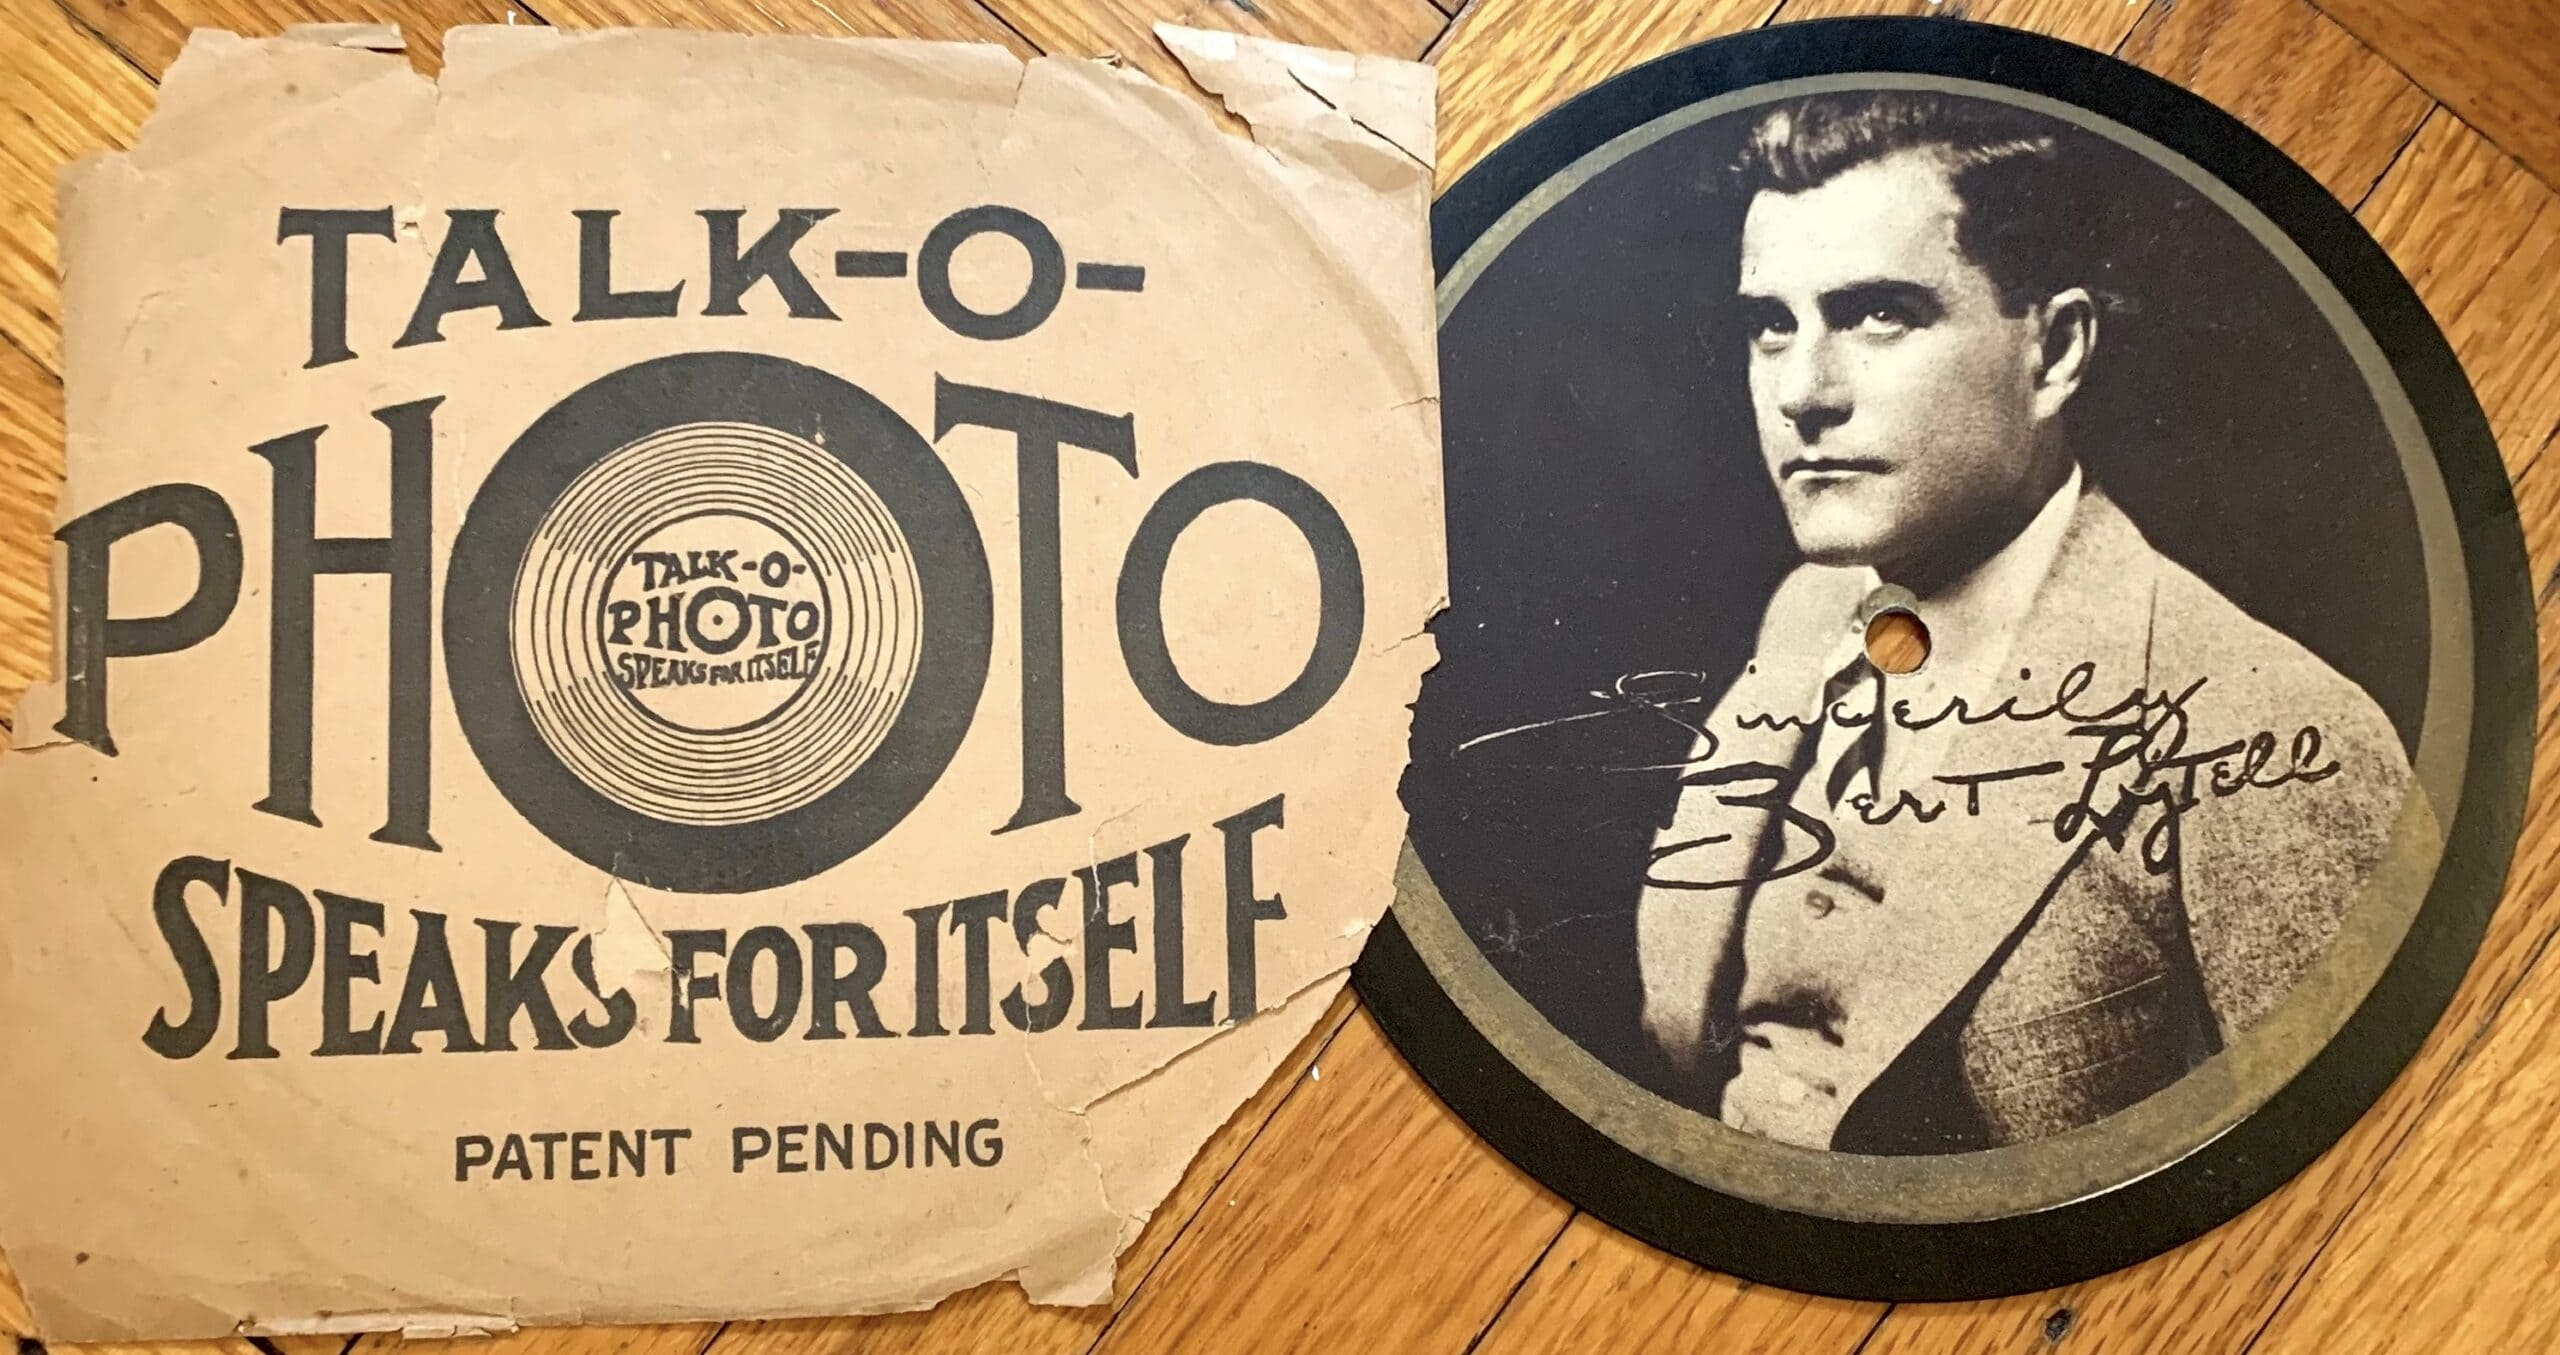 A Talk-O-Photo disc, front side.